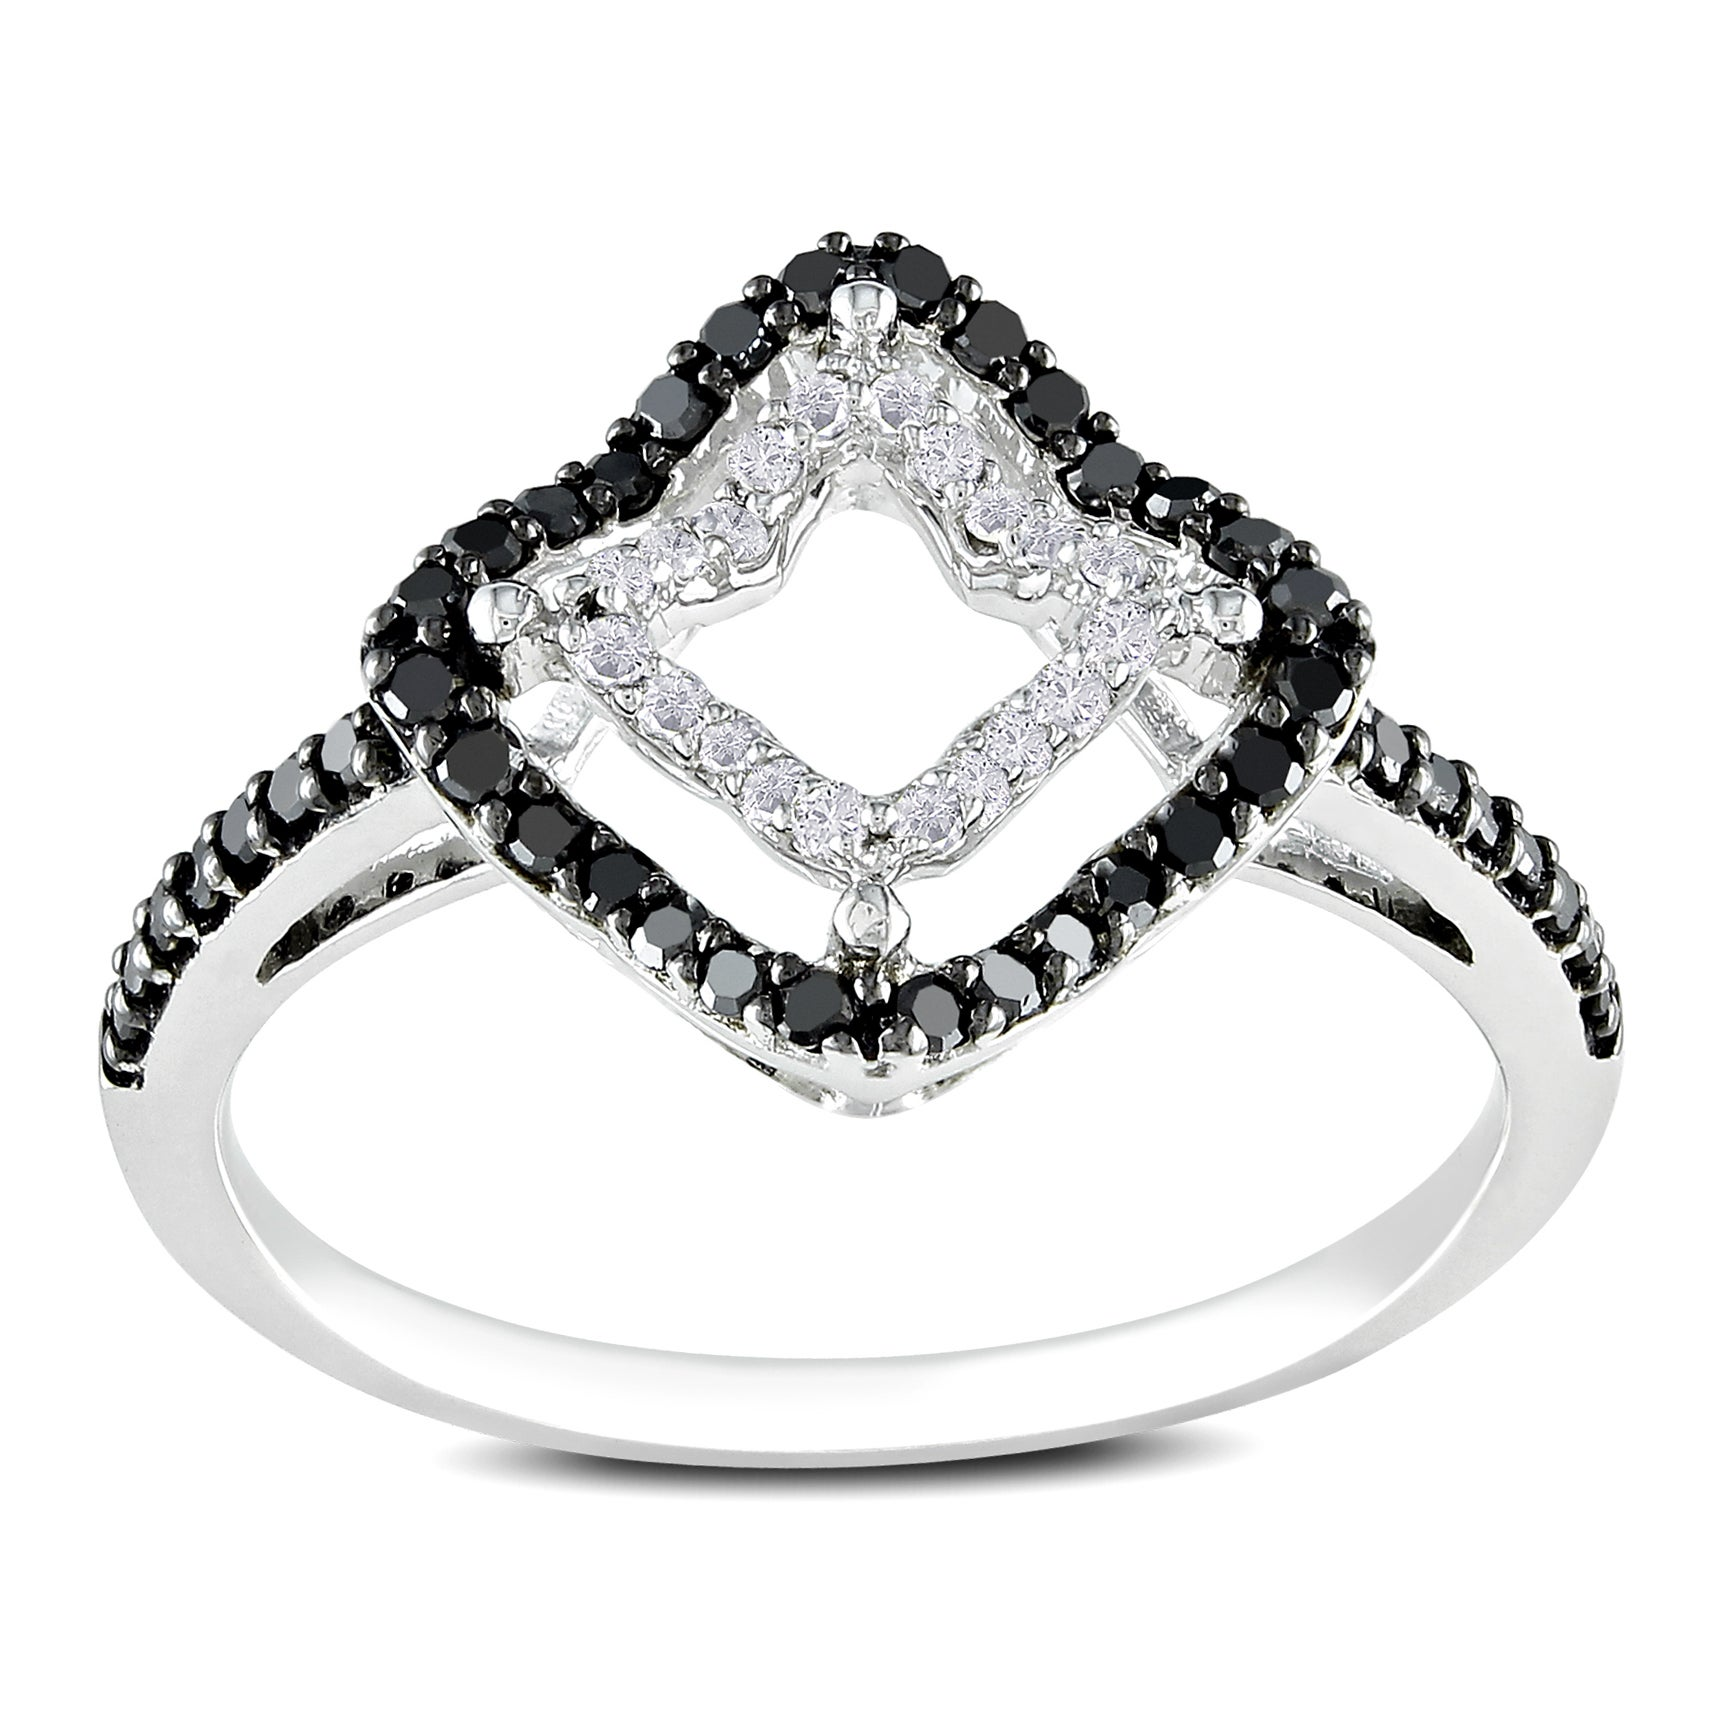 Miadora 14k White Gold 1/3ct TDW Prong-set Black and White Diamond Ring (G-H, I1-I2)